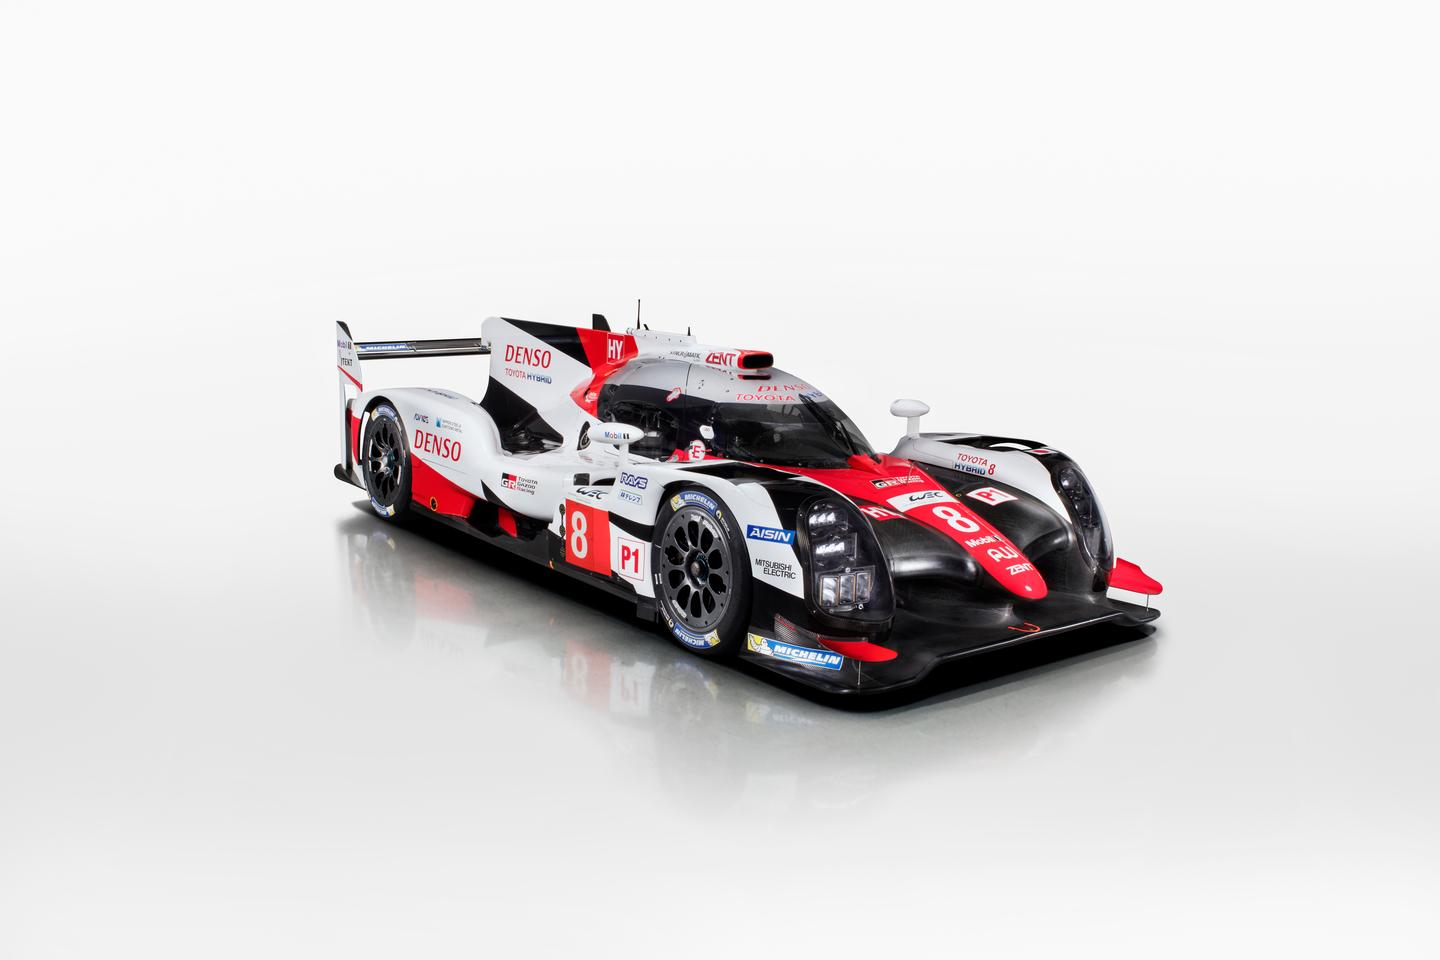 Toyota is hoping to recover from its Le Mans heartbreak with the TS050